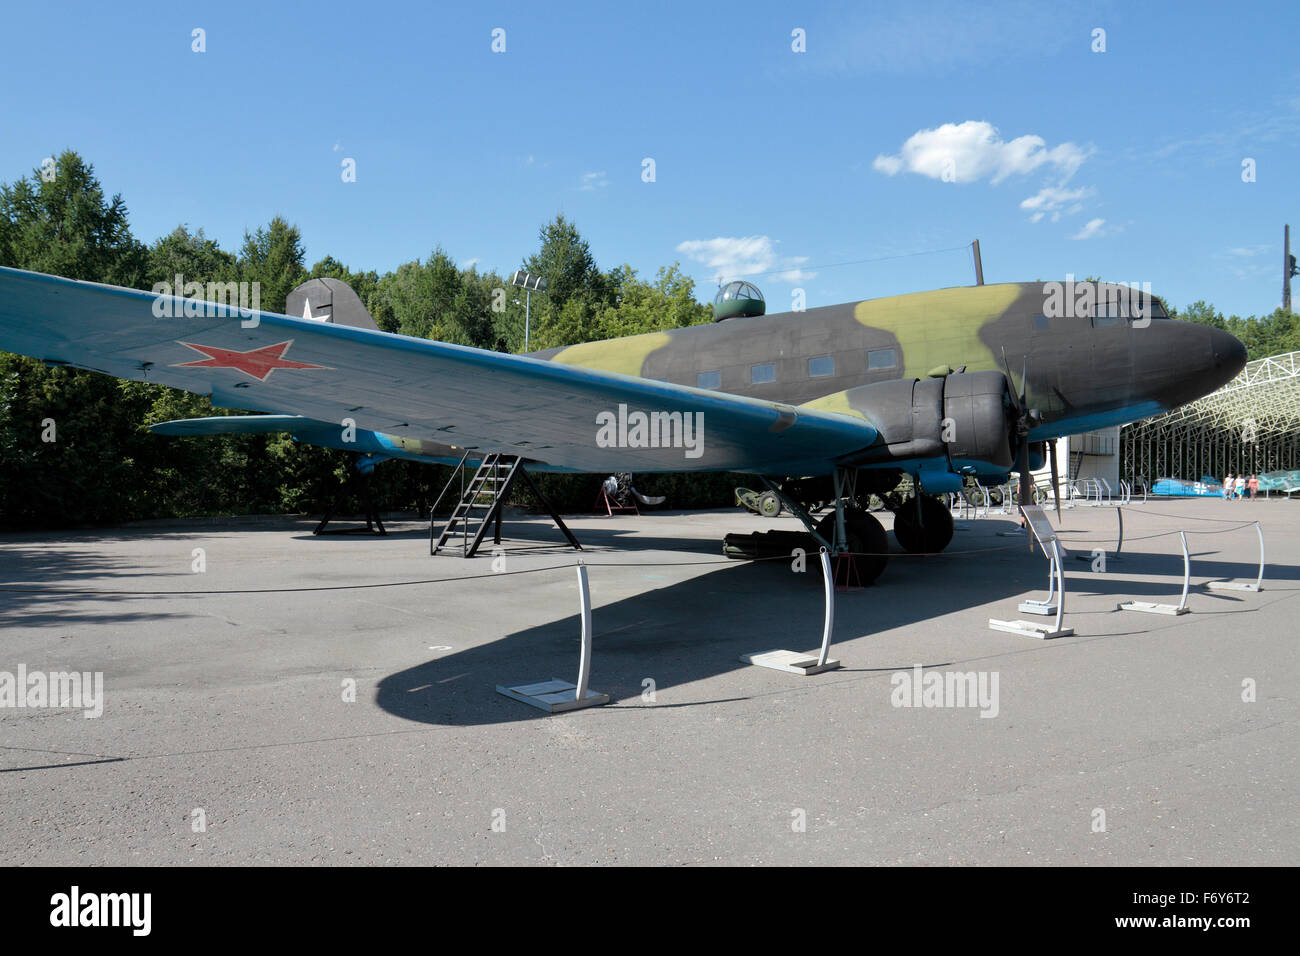 A Soviet Li-2 military transport plane from WWII in the Exposition of Military Equipment in Park Pobedy, Moscow, - Stock Image